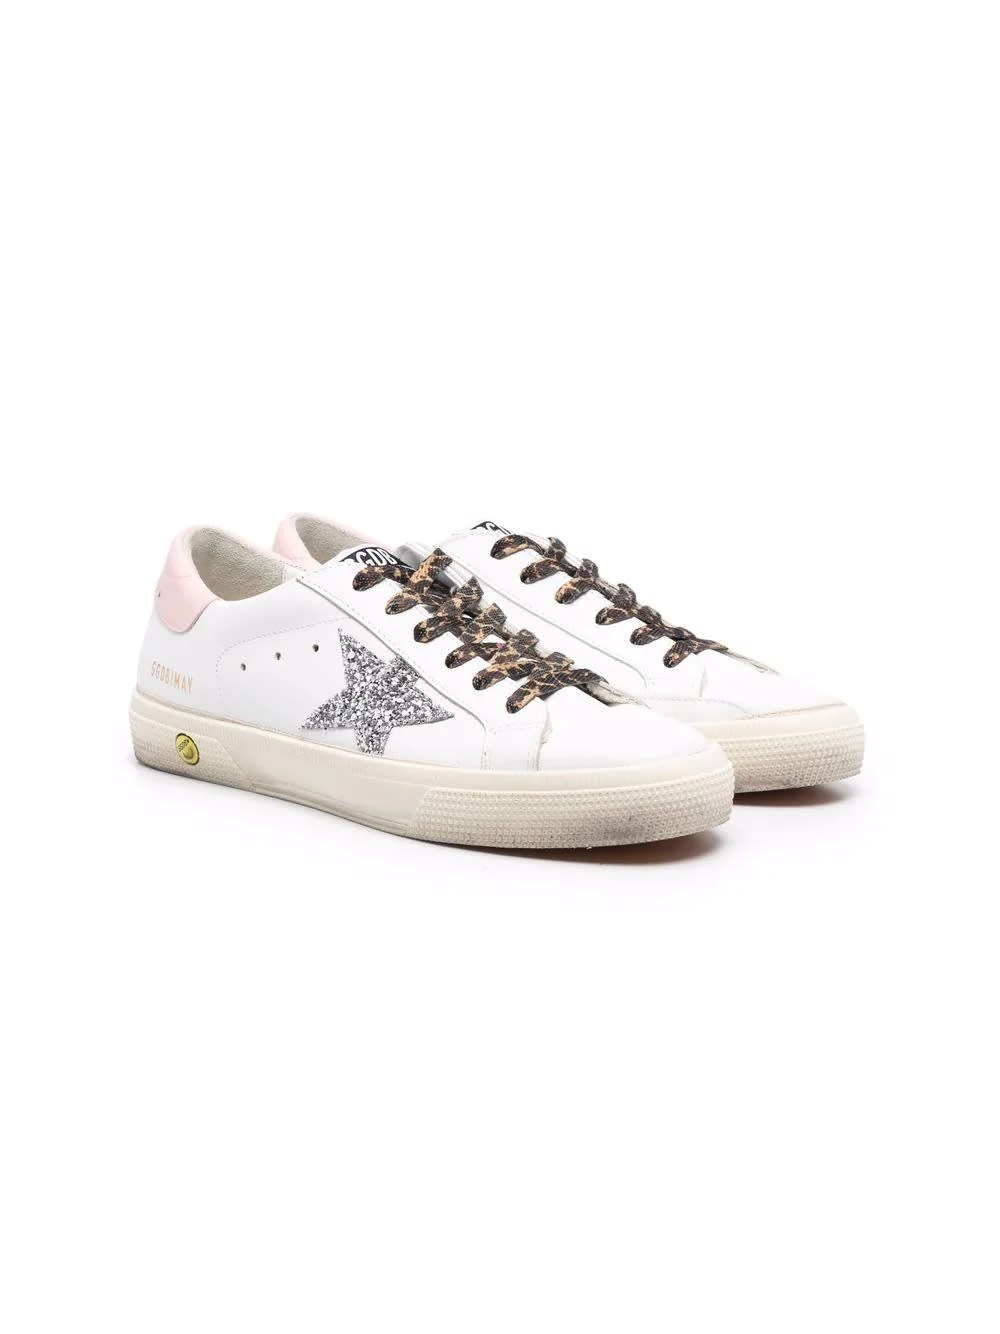 Golden Goose Superstar Sneakers With Glitter Detail